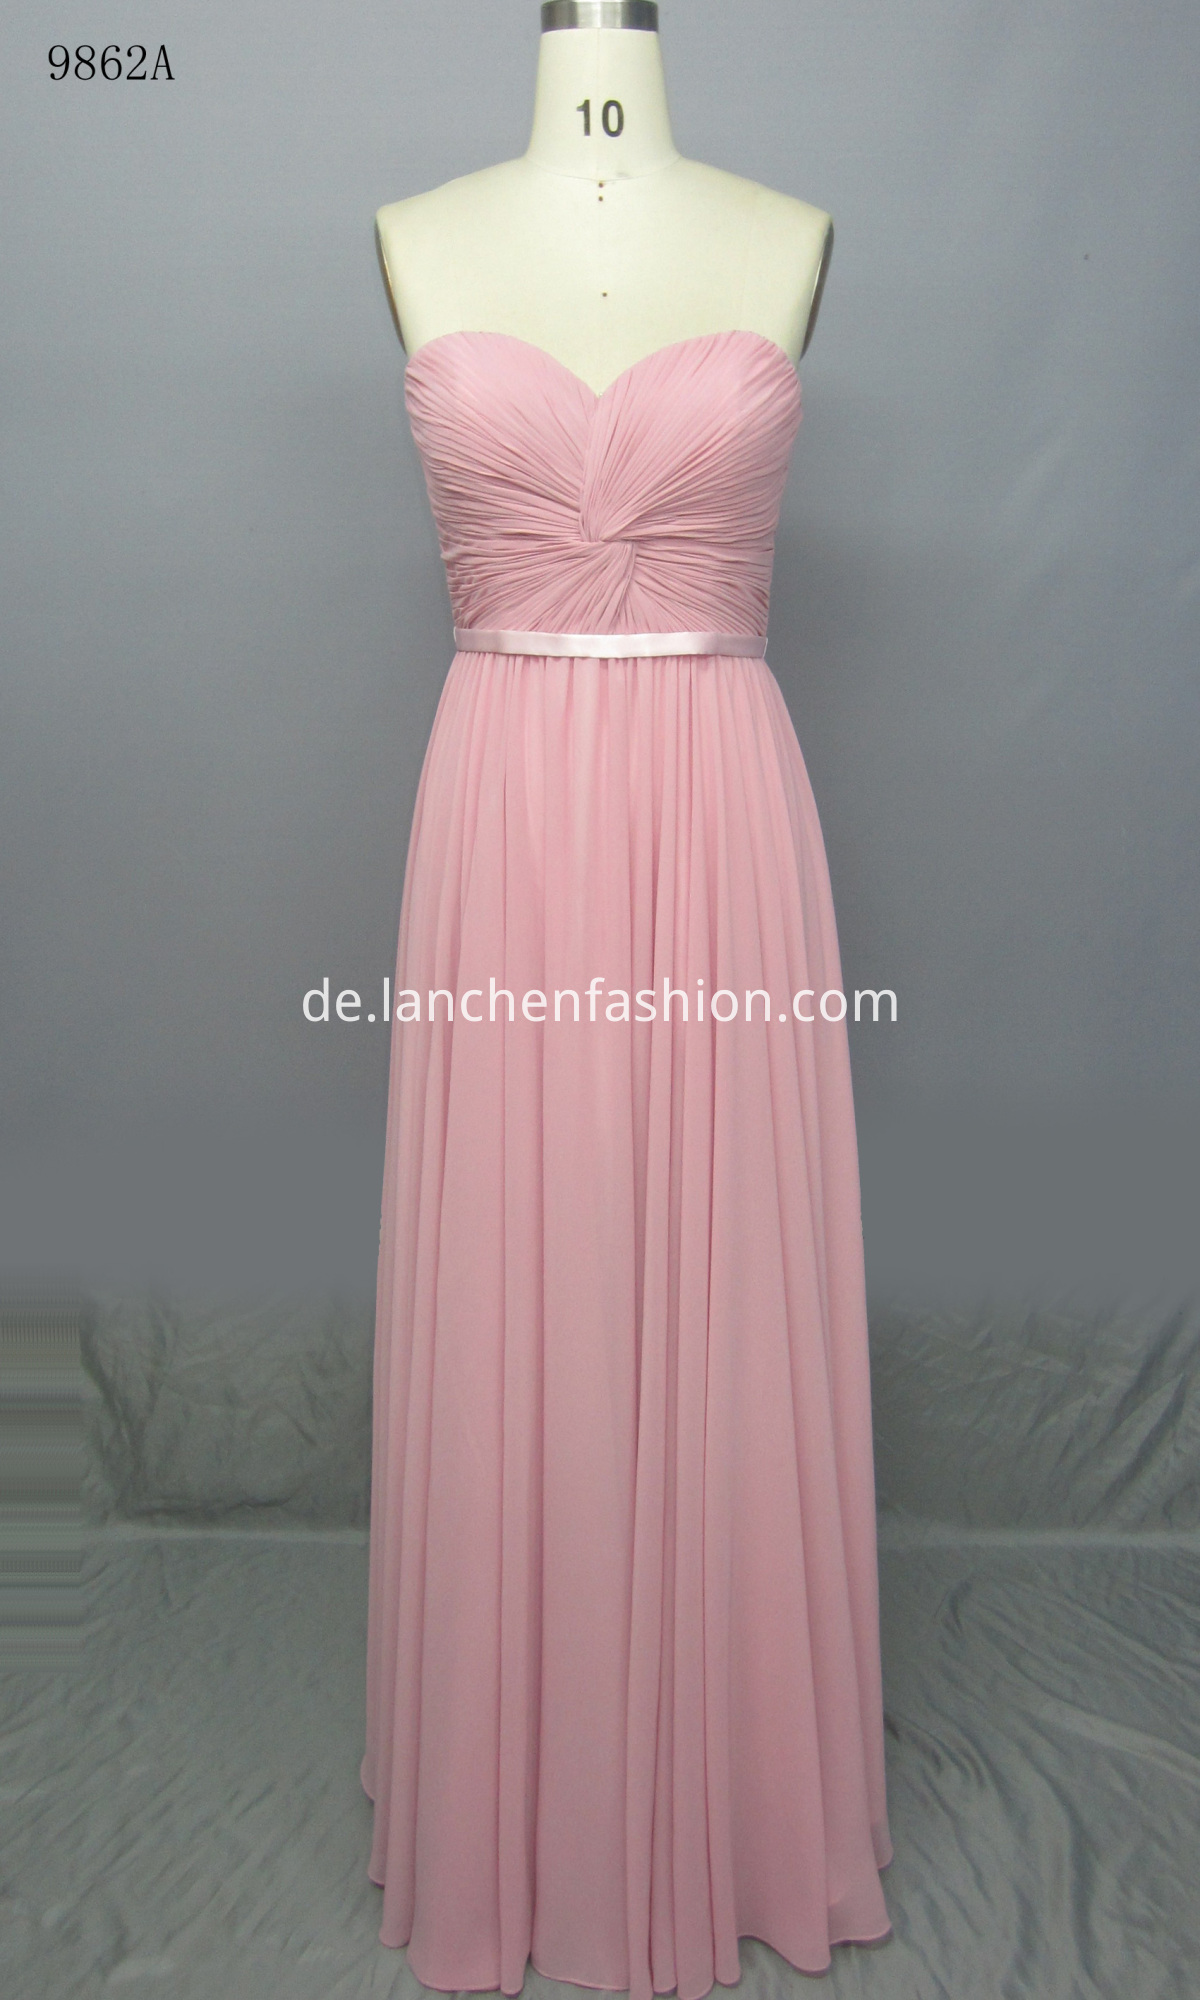 Lace Decoration Maxi Dress